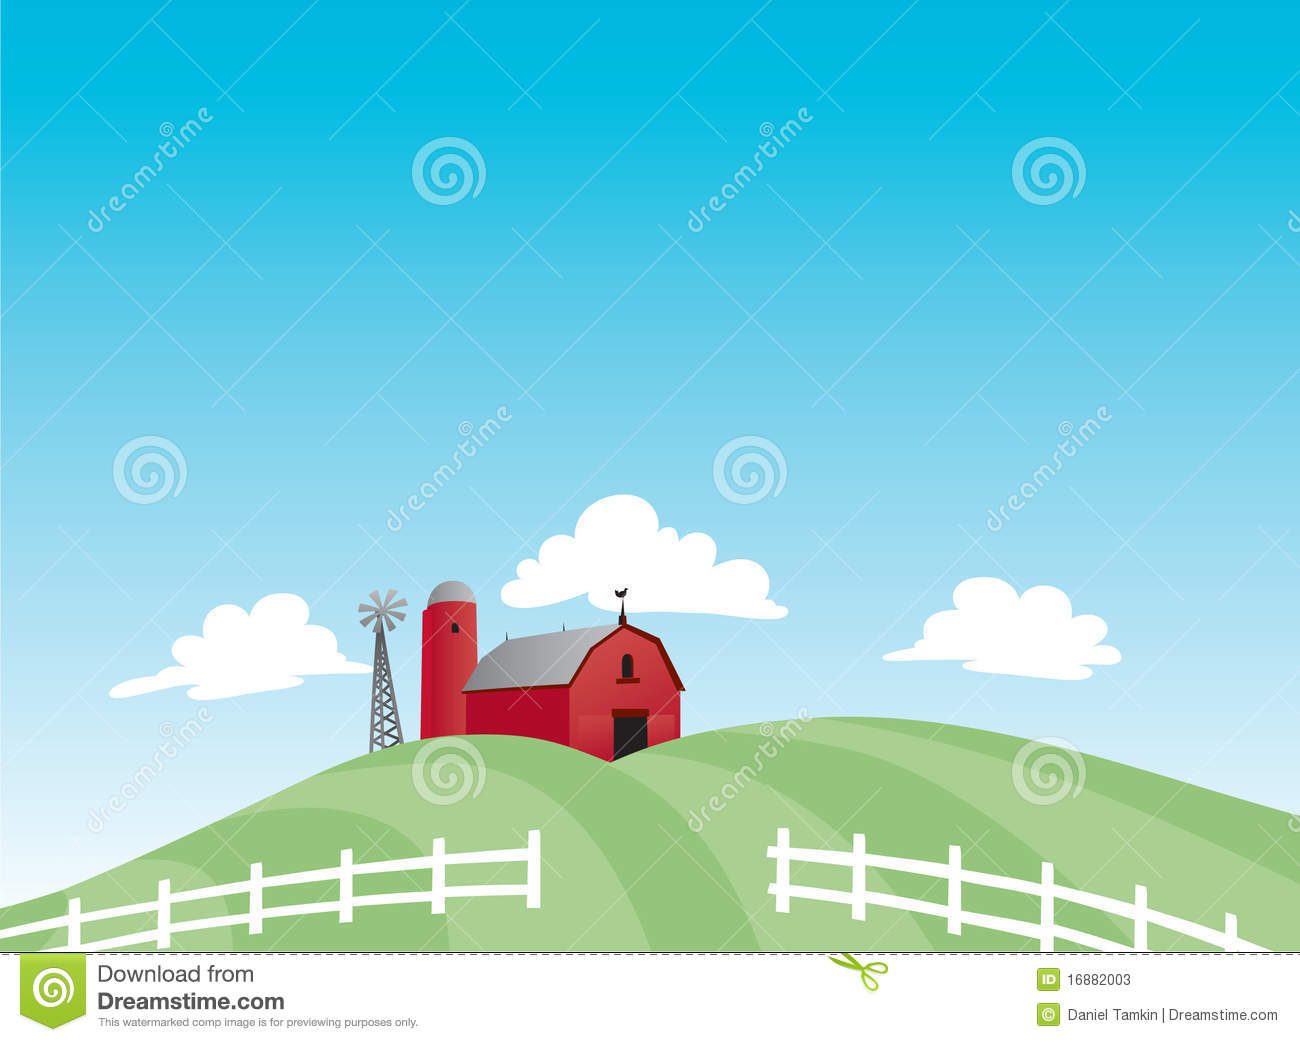 Cartoon farm with red barn a silo and windmill set on rolling hills